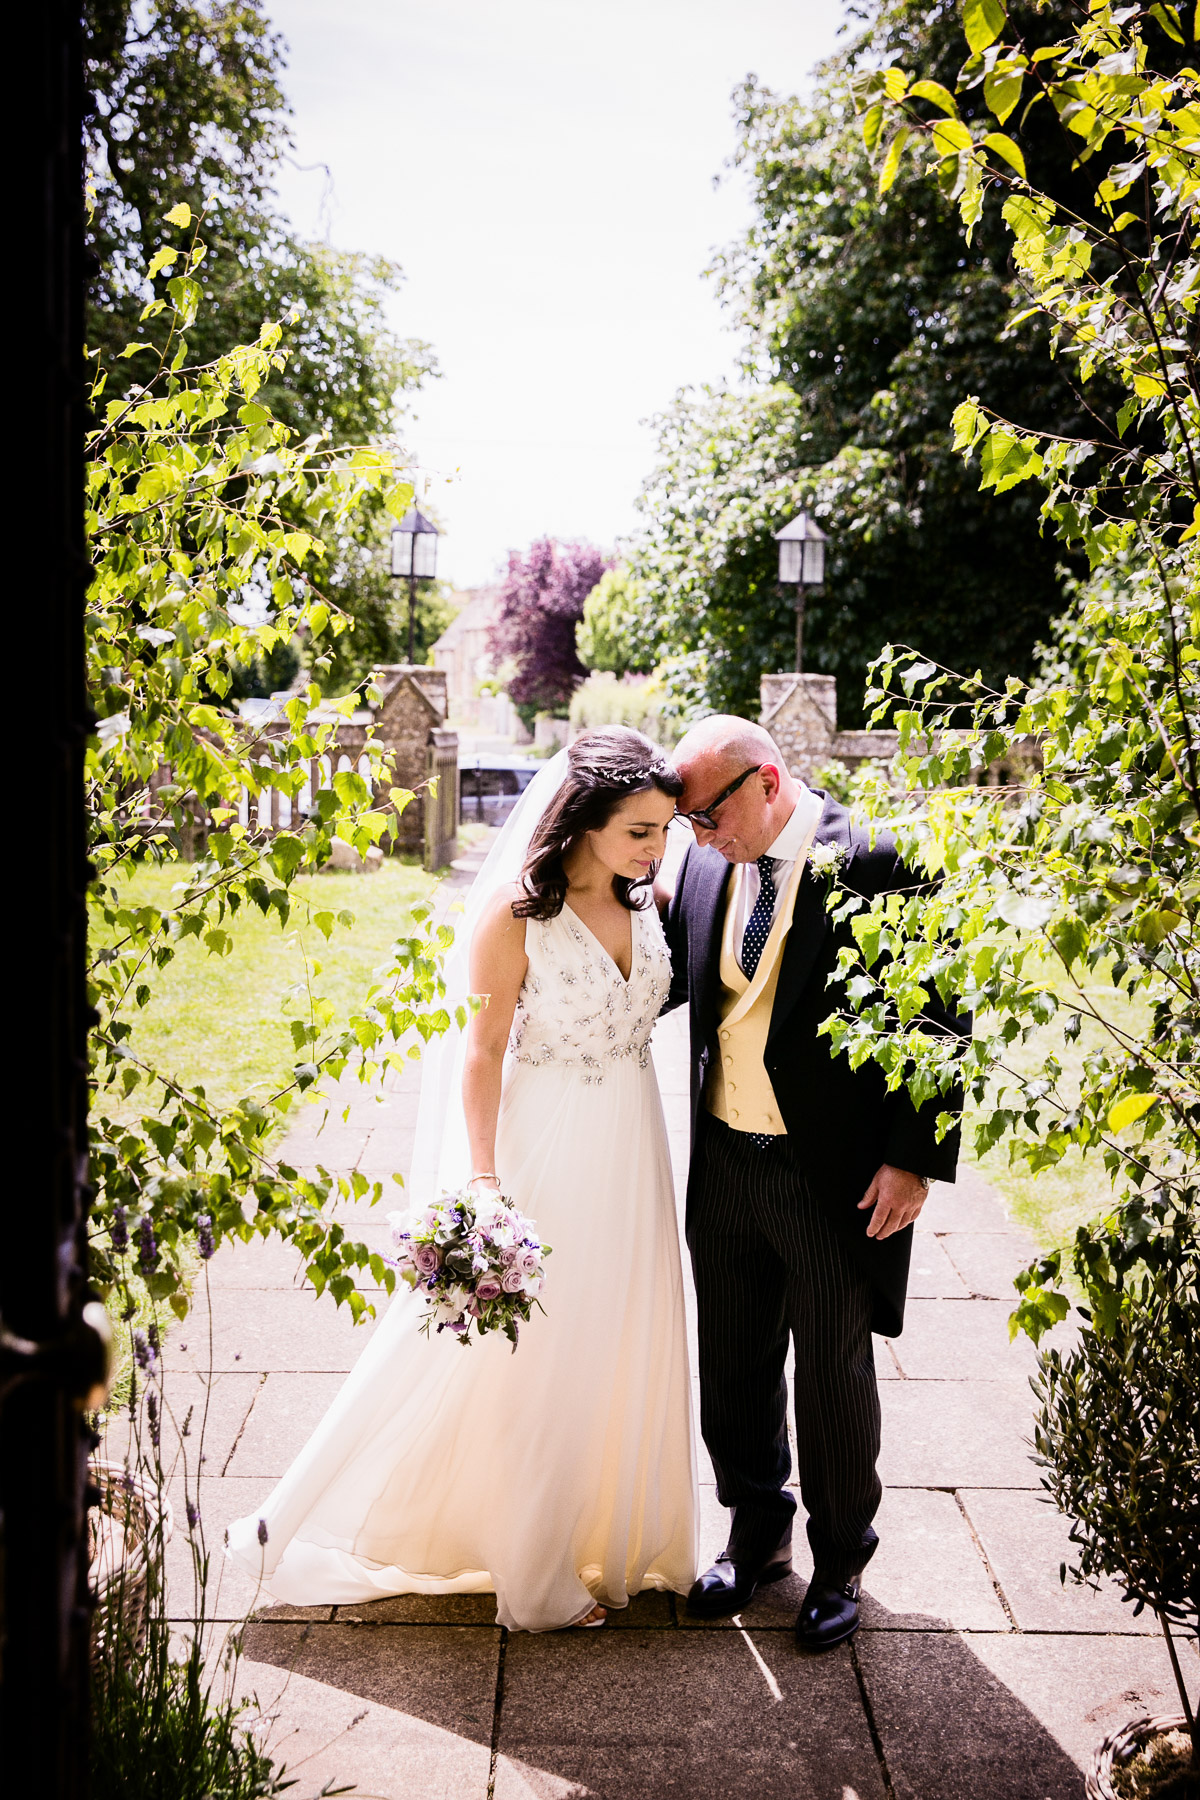 london-documentary-wedding-photographer 003.JPG